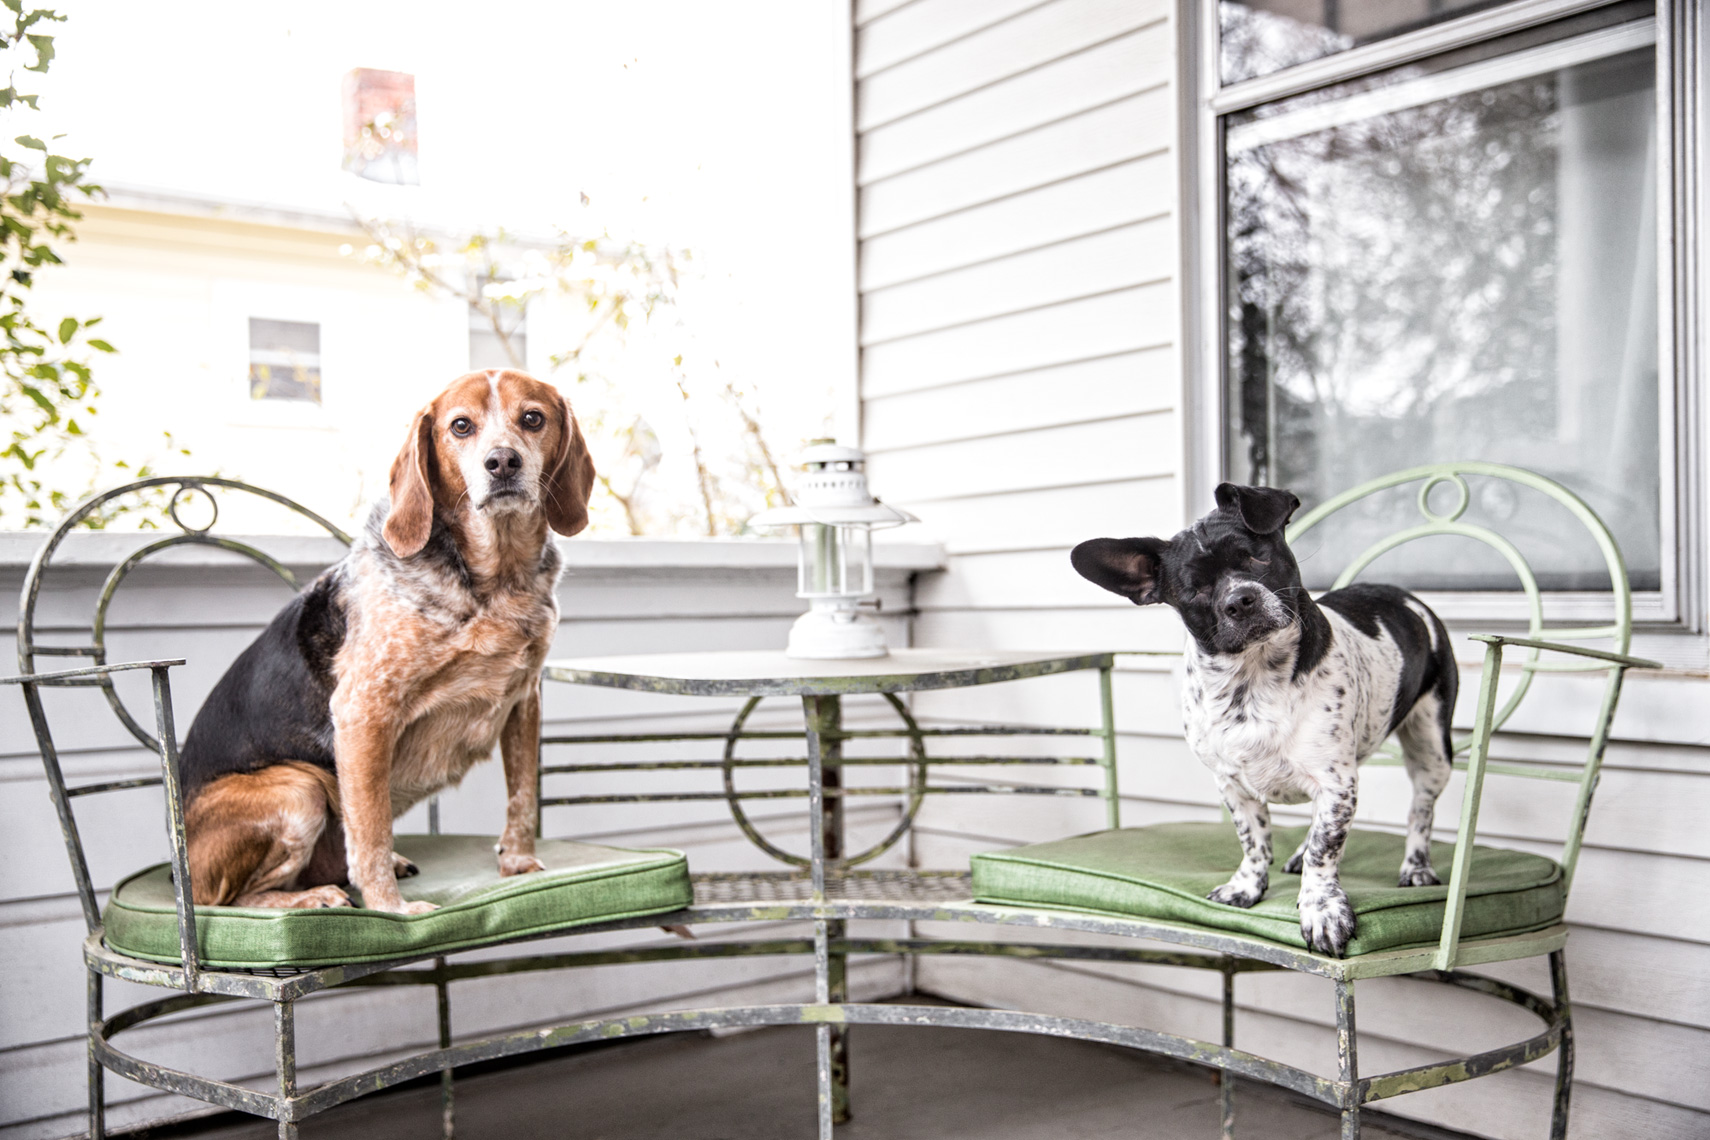 Los Angeles Dog Photography, Michael Brian, pet, cat, Blind black and white dog, Portrait of two dogs in chairs on porch of house, Zeus Jones Purina ONE 28 Day Challenge Asheville, North Carolina